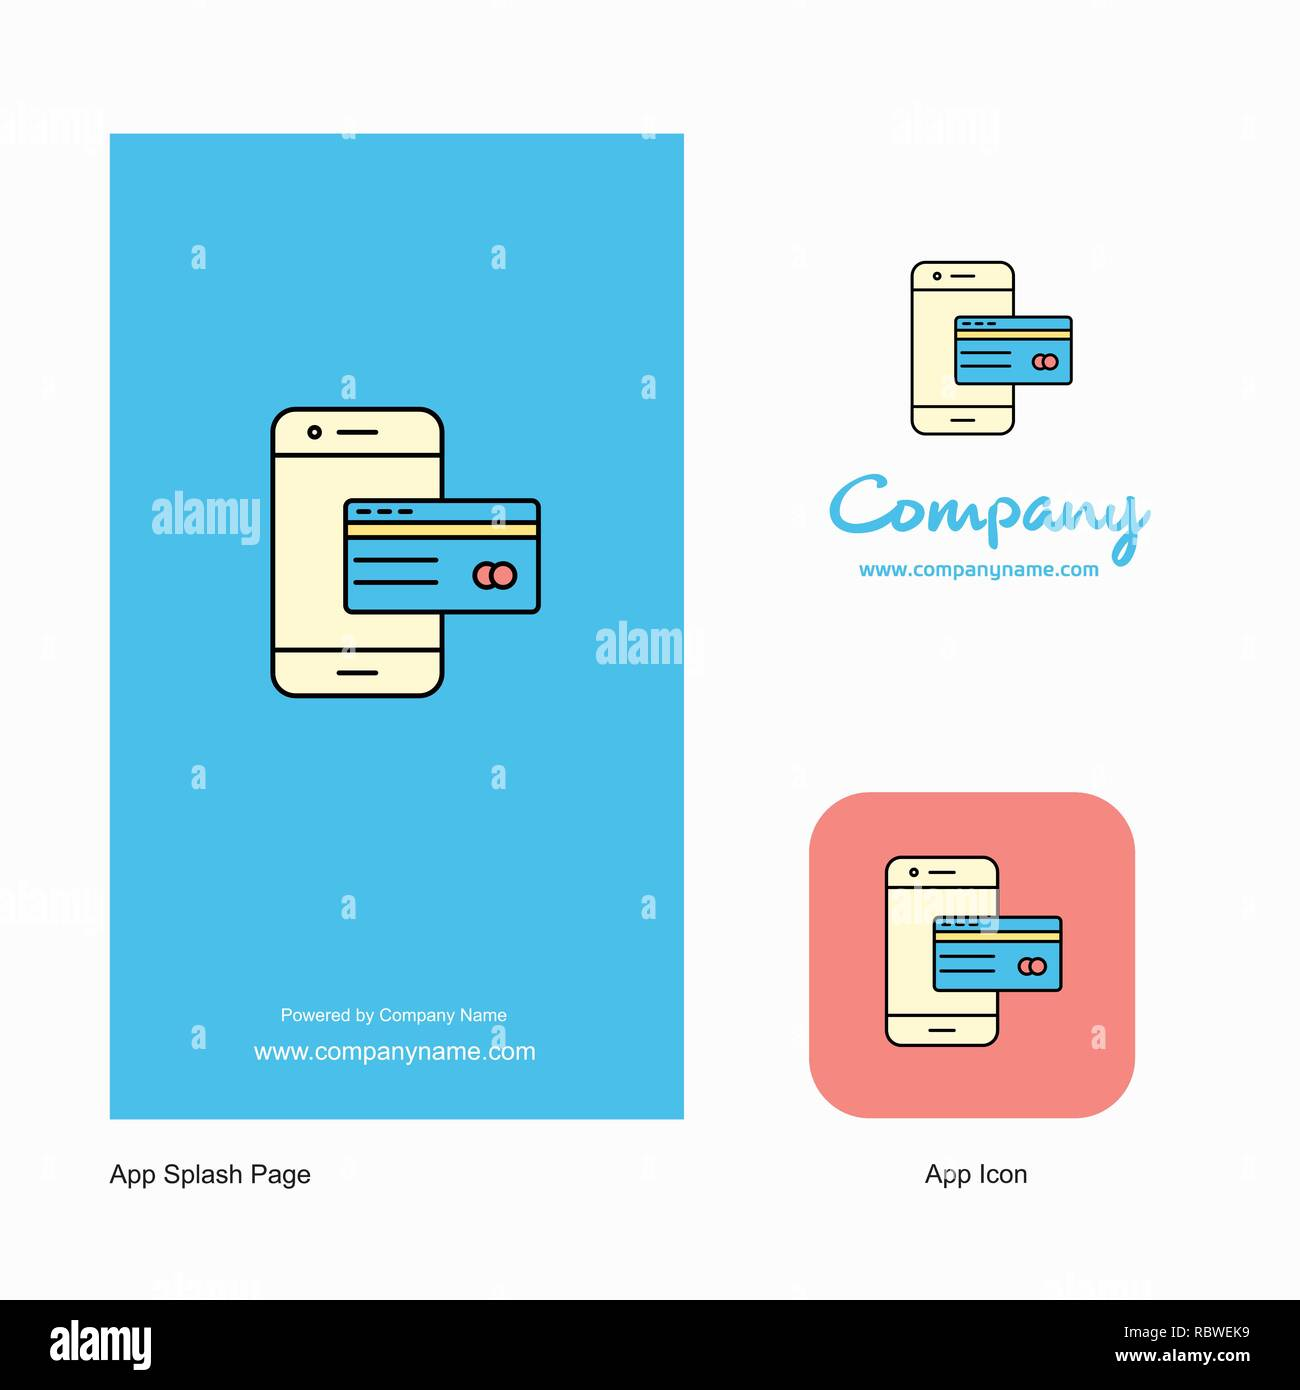 Online Banking Company Logo App Icon And Splash Page Design